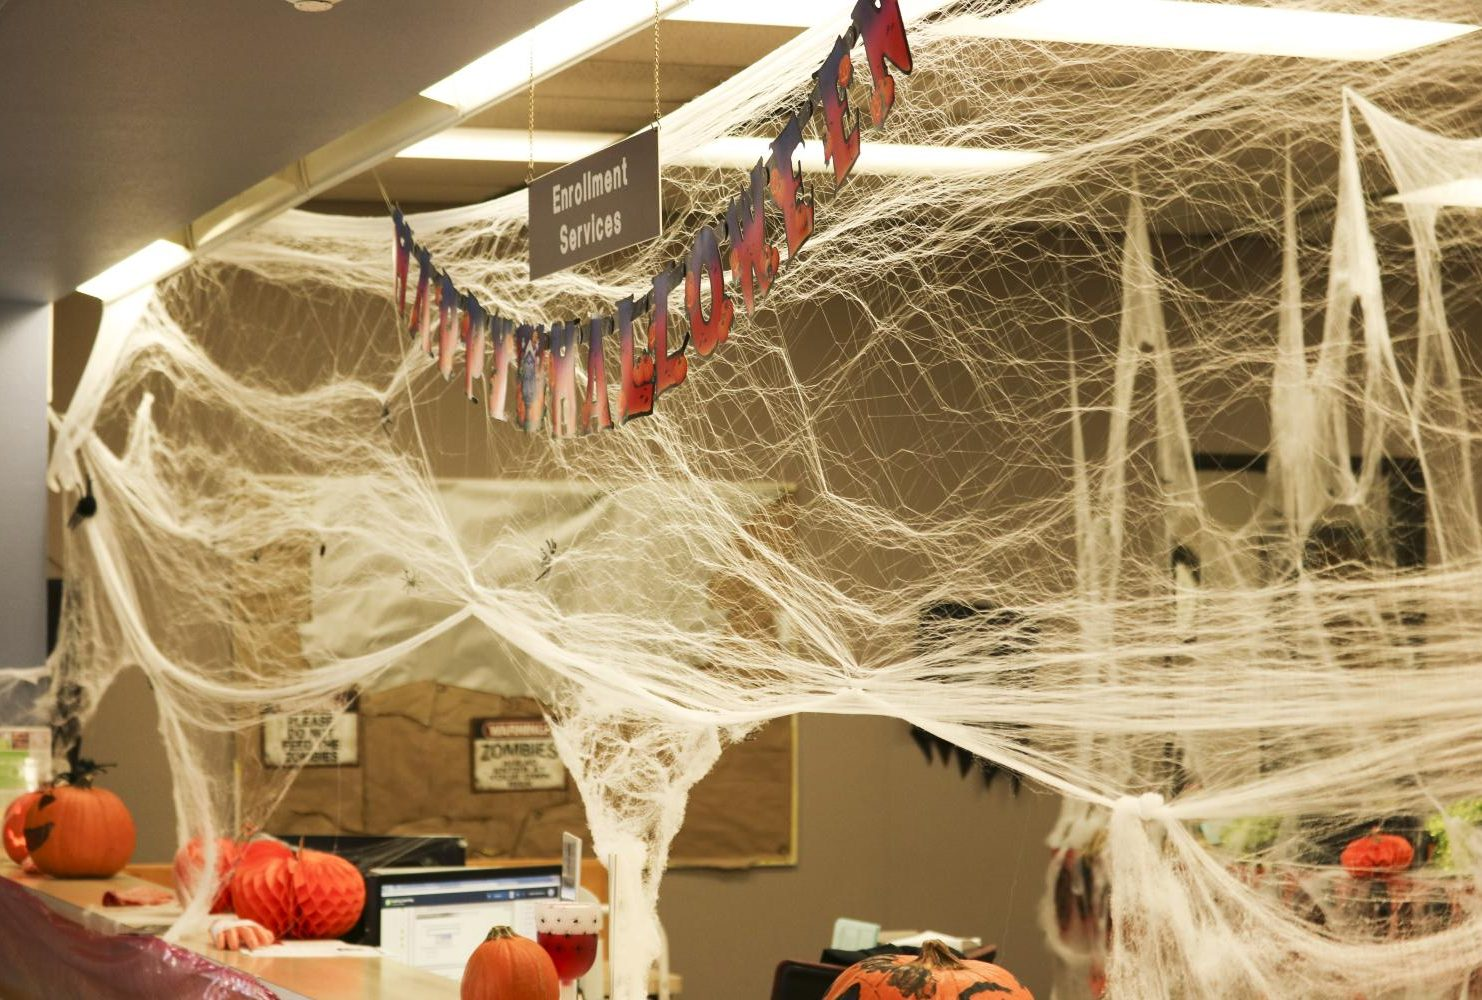 Enrollment Services located in the Administration Building decorates their department with the cobwebs and pumpkins. (Photo by Gabe Carlos)